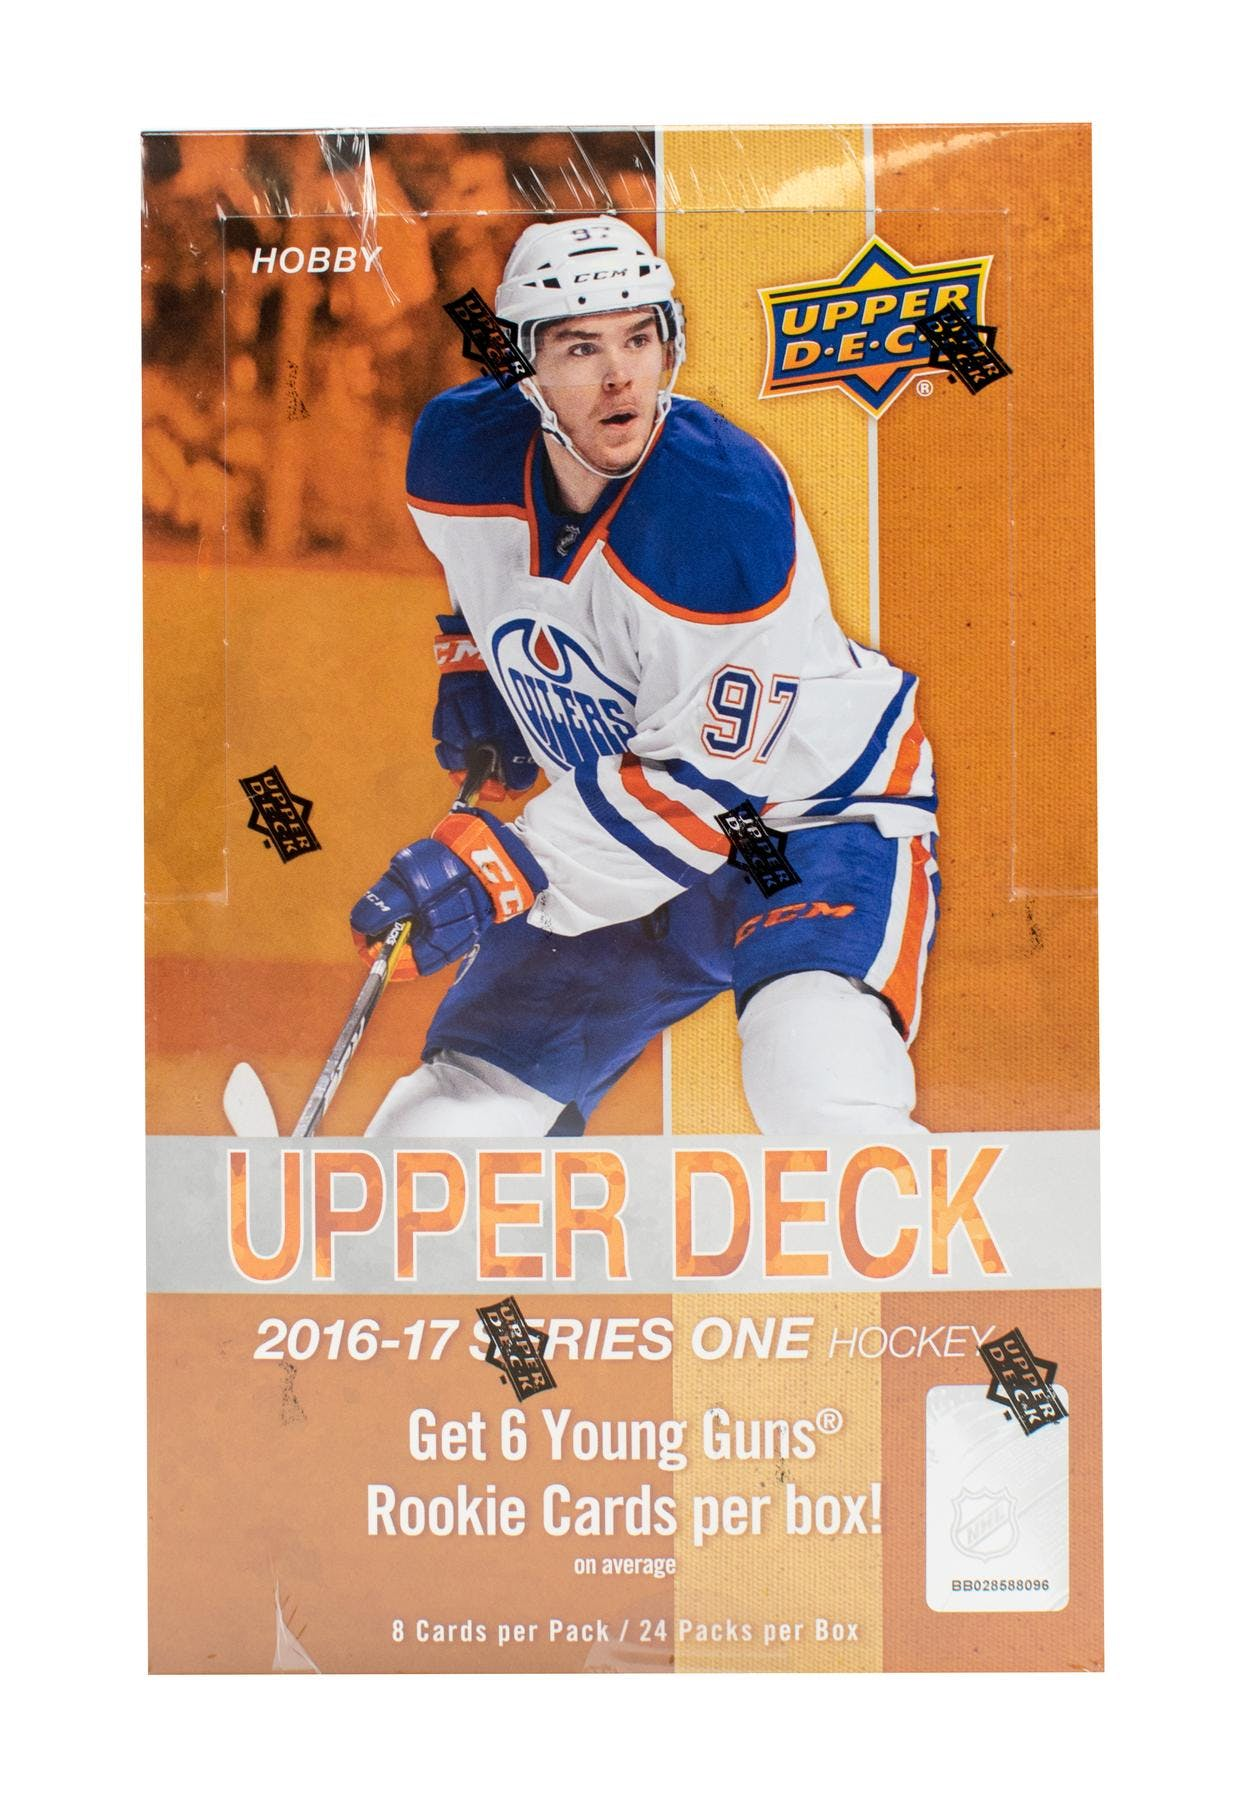 201617 Upper Deck Series 1 Hockey Hobby Box